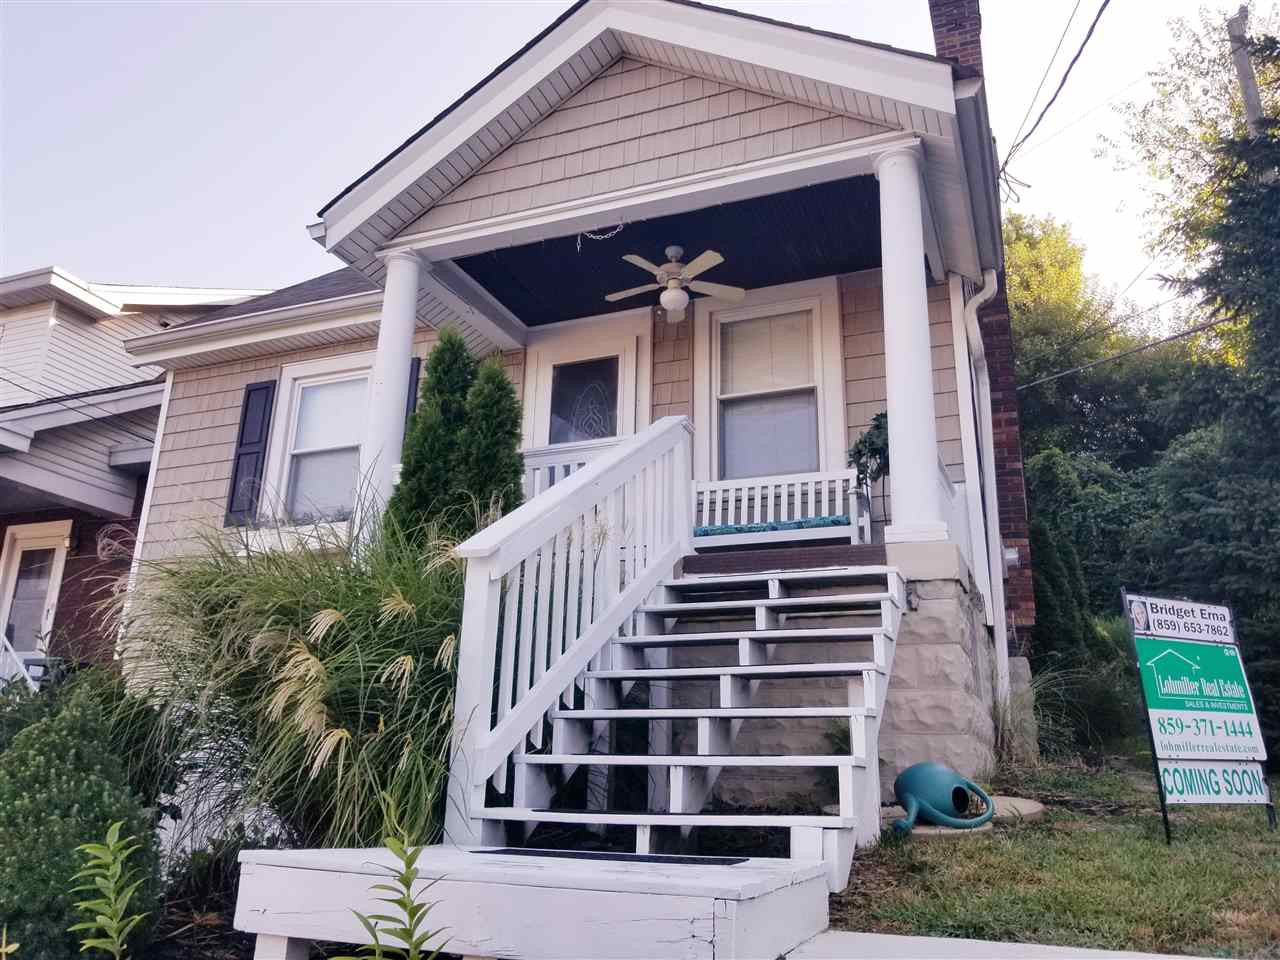 Photo 2 for 200 Linden Ave Southgate, KY 41071